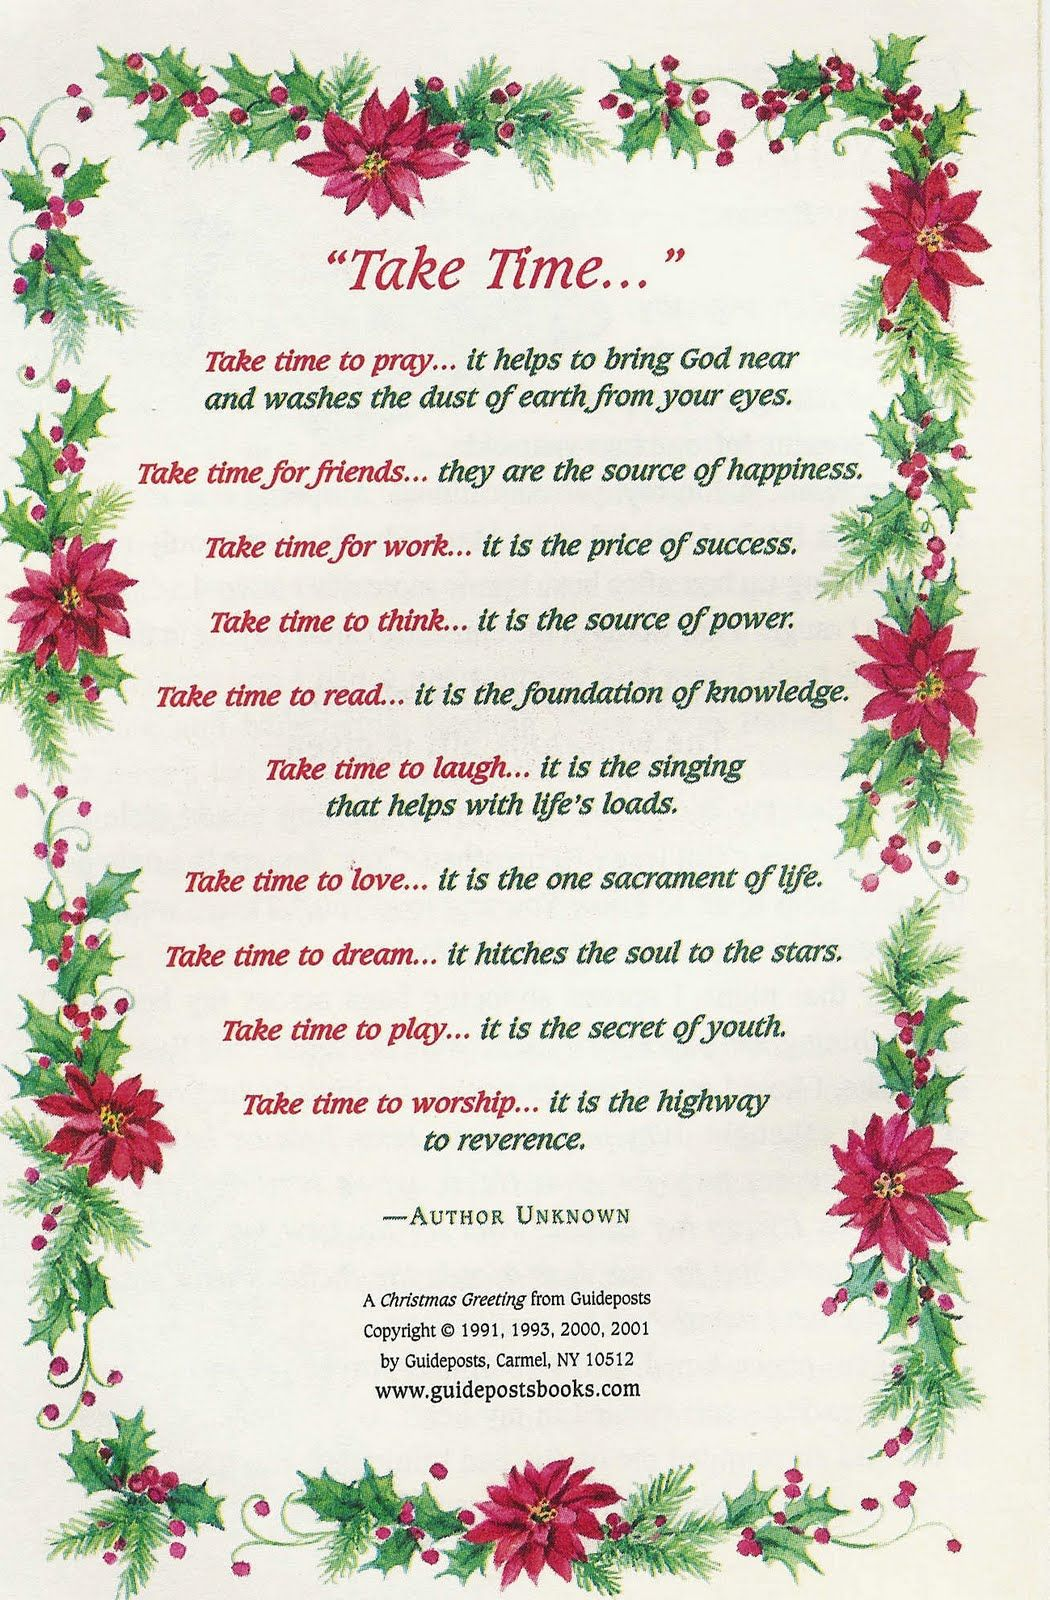 Christmas poems for church programs - Christmas Poems Critter Sister Journal Take Time For What S Important